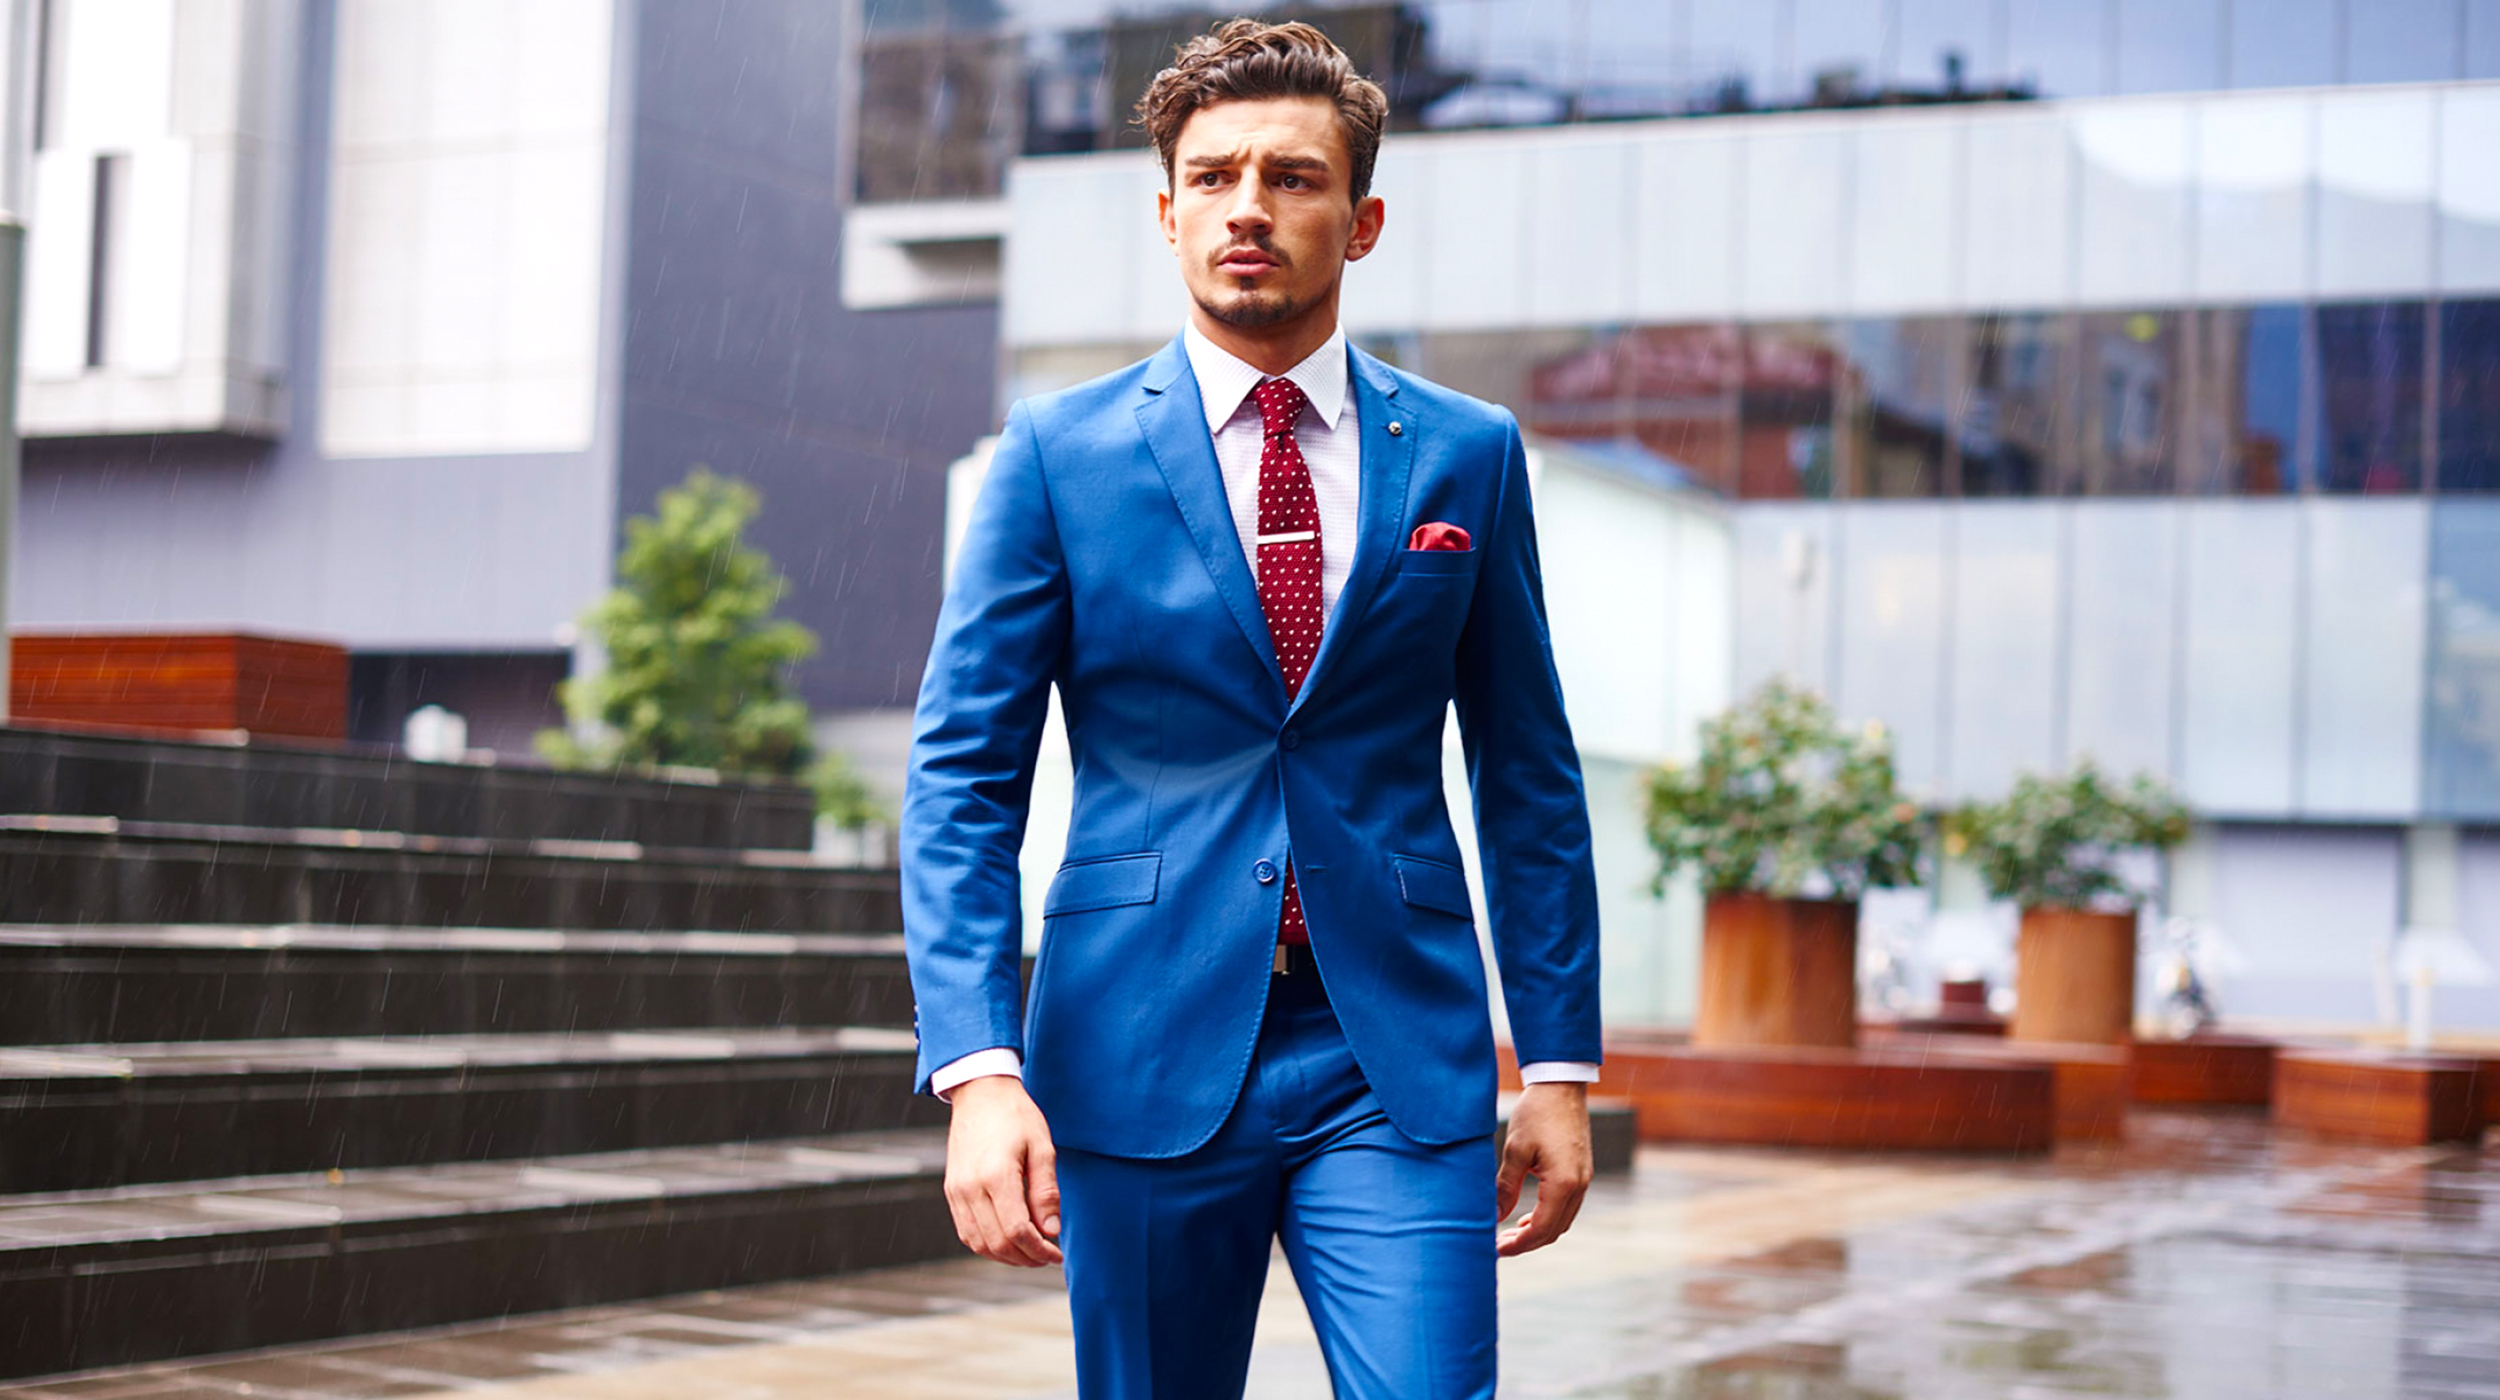 Contrasting colors scheme: Blue suit and a red tie